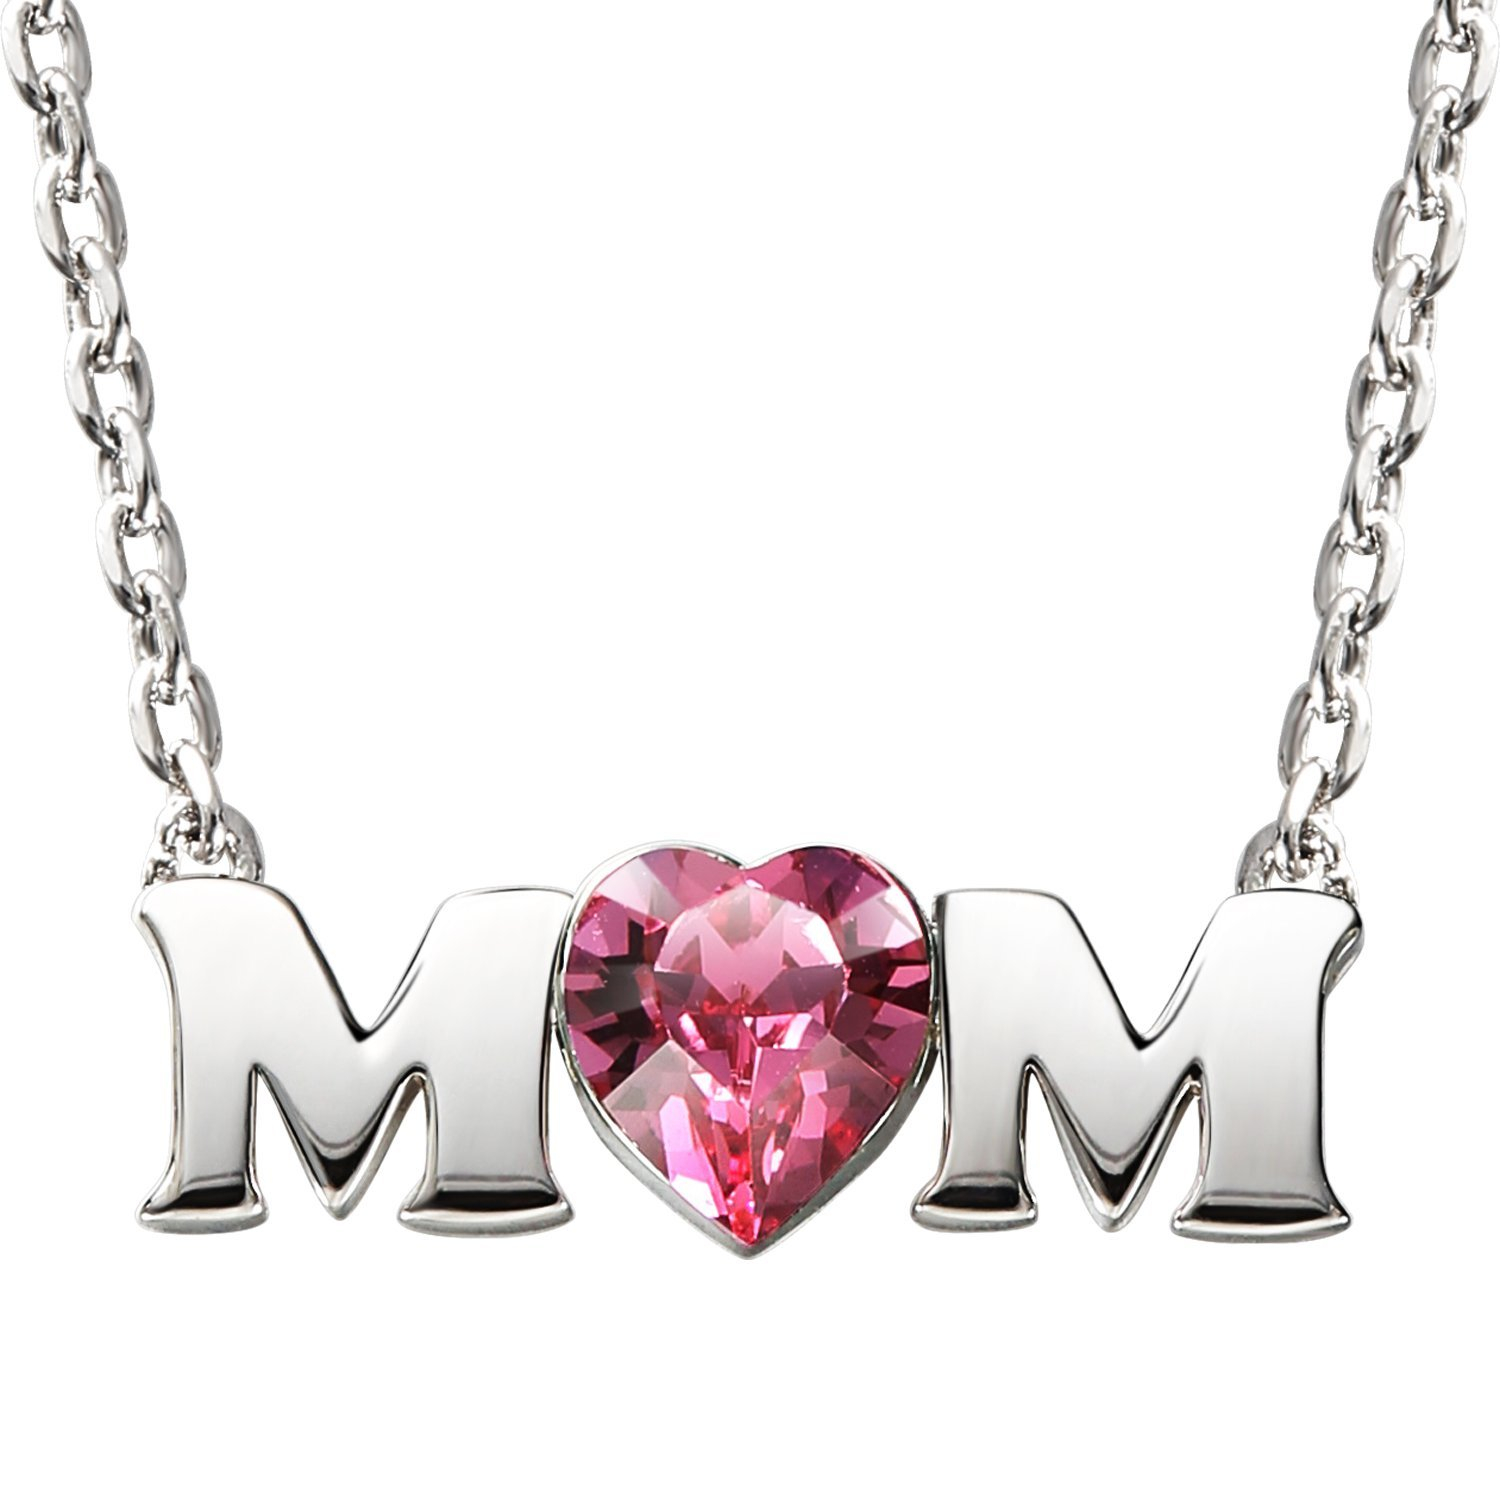 SILYHEART Gift For Mom Necklace Mothers Day Jewelry Gifts Birthday From Daughter Son